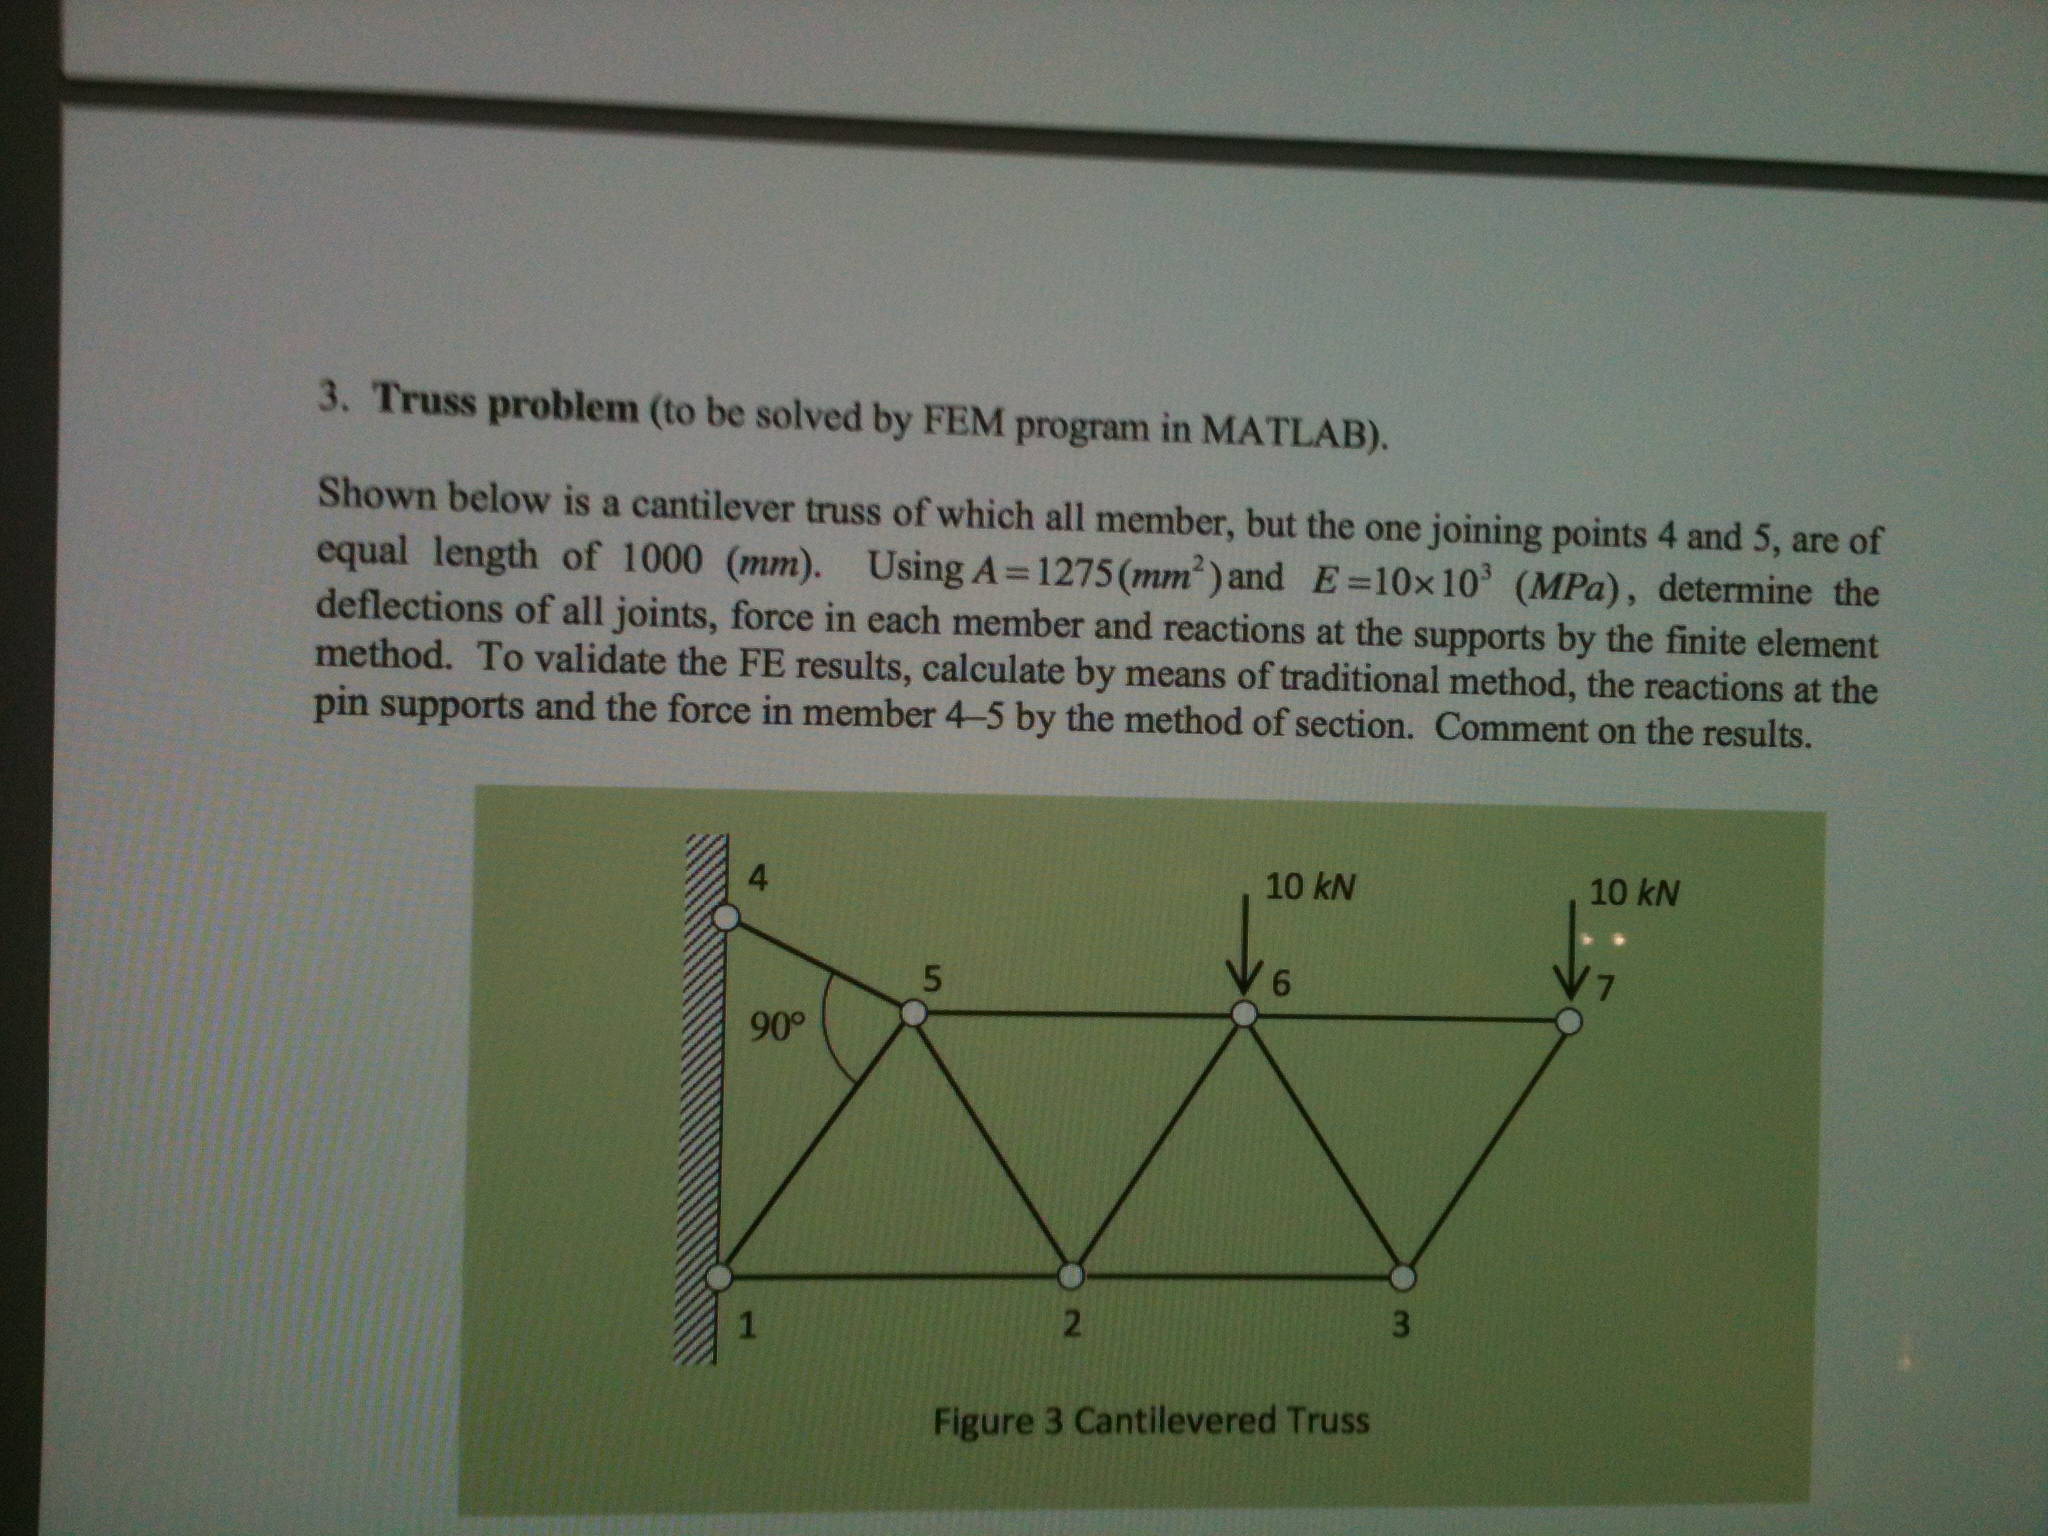 Truss problem (to be solved by FEM programs in MAT